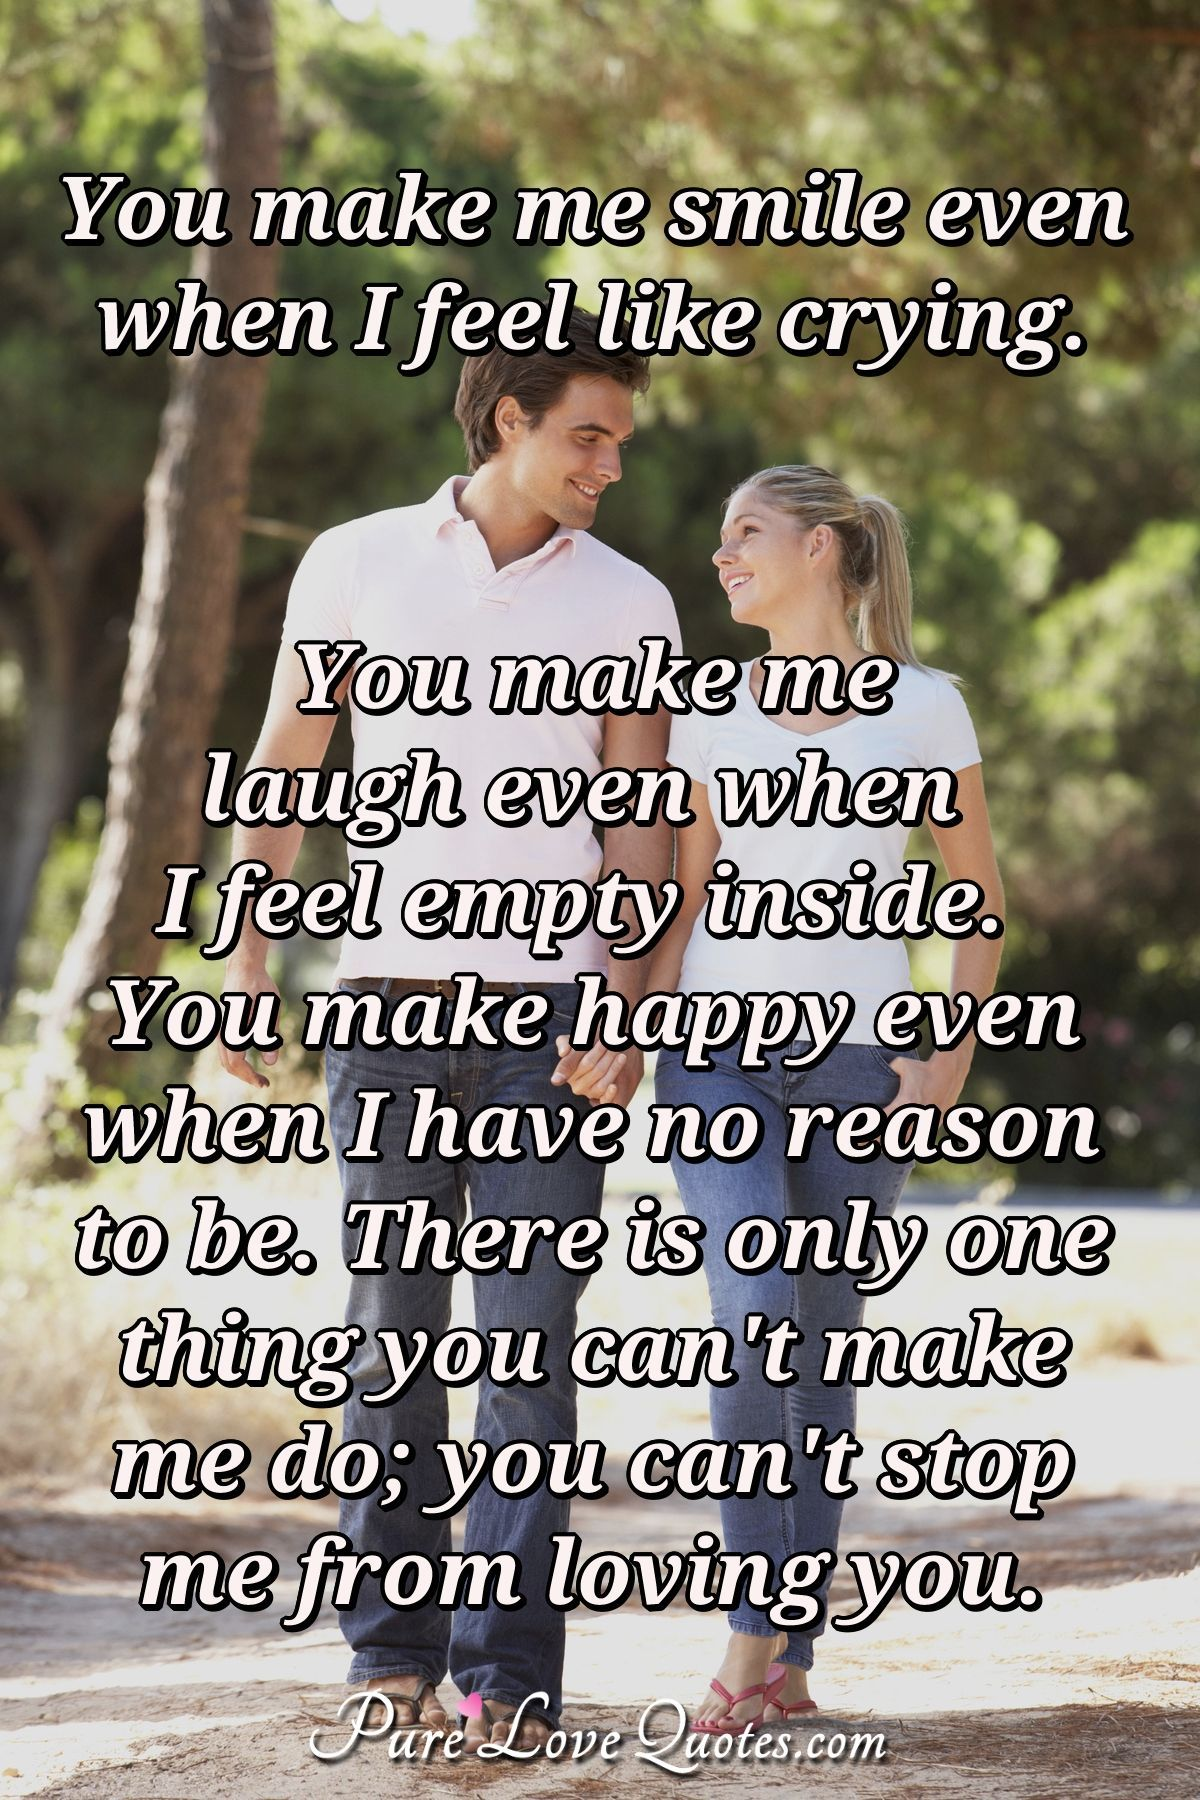 Love Quotes From Purelovequotes Com Love You Messages Feel Like Crying You Make Me Laugh